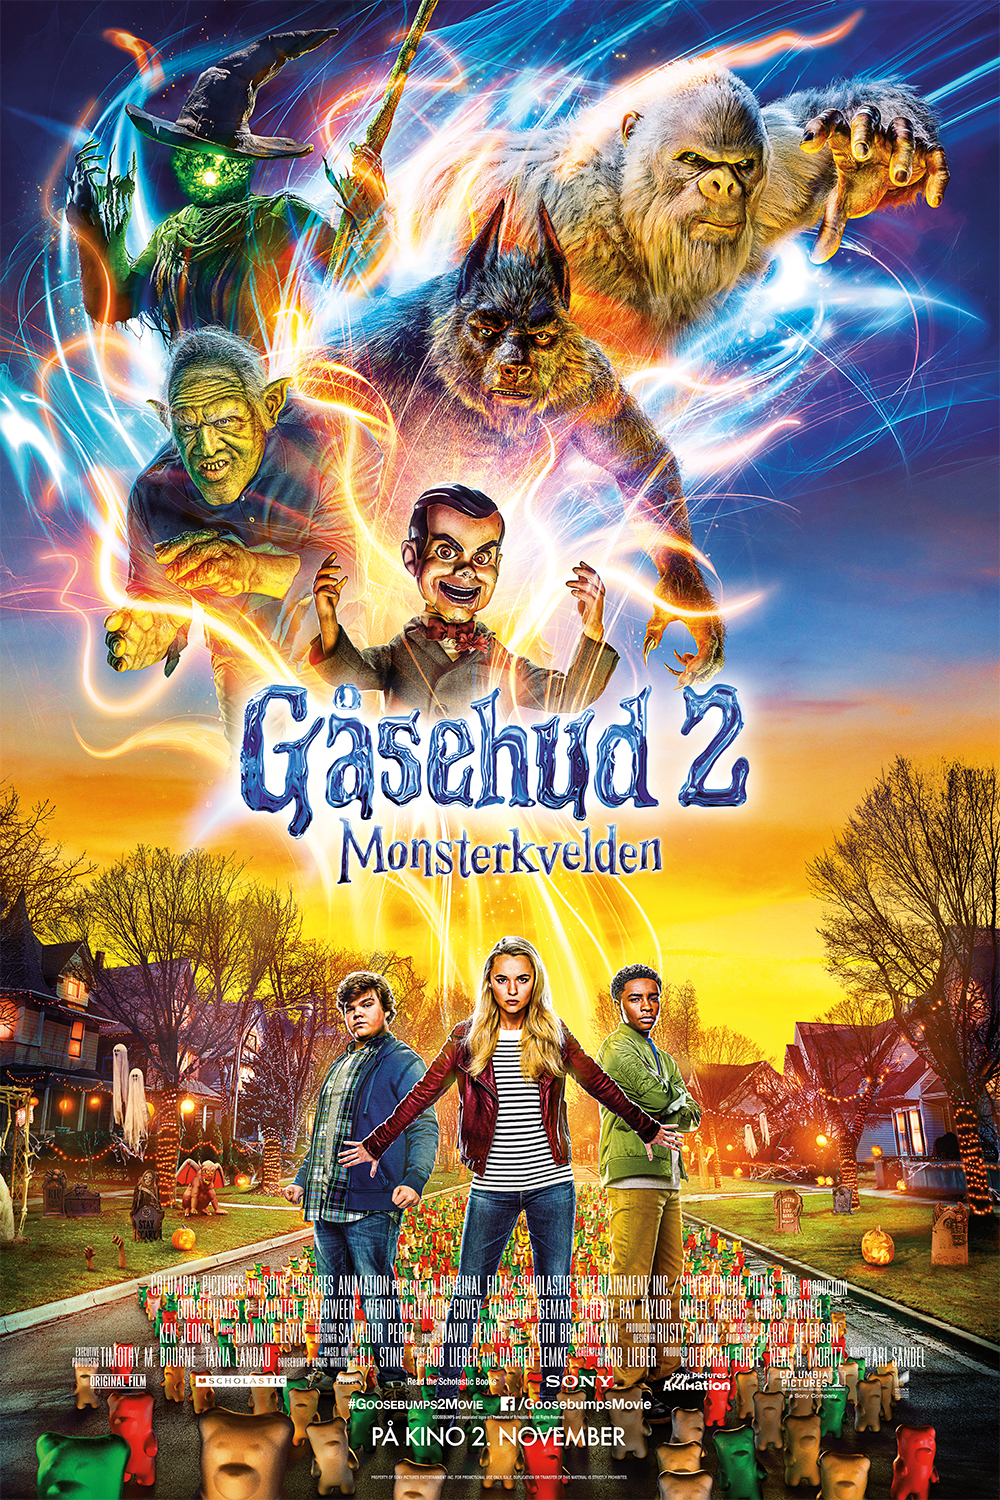 Gåsehud 2: Monsterkvelden